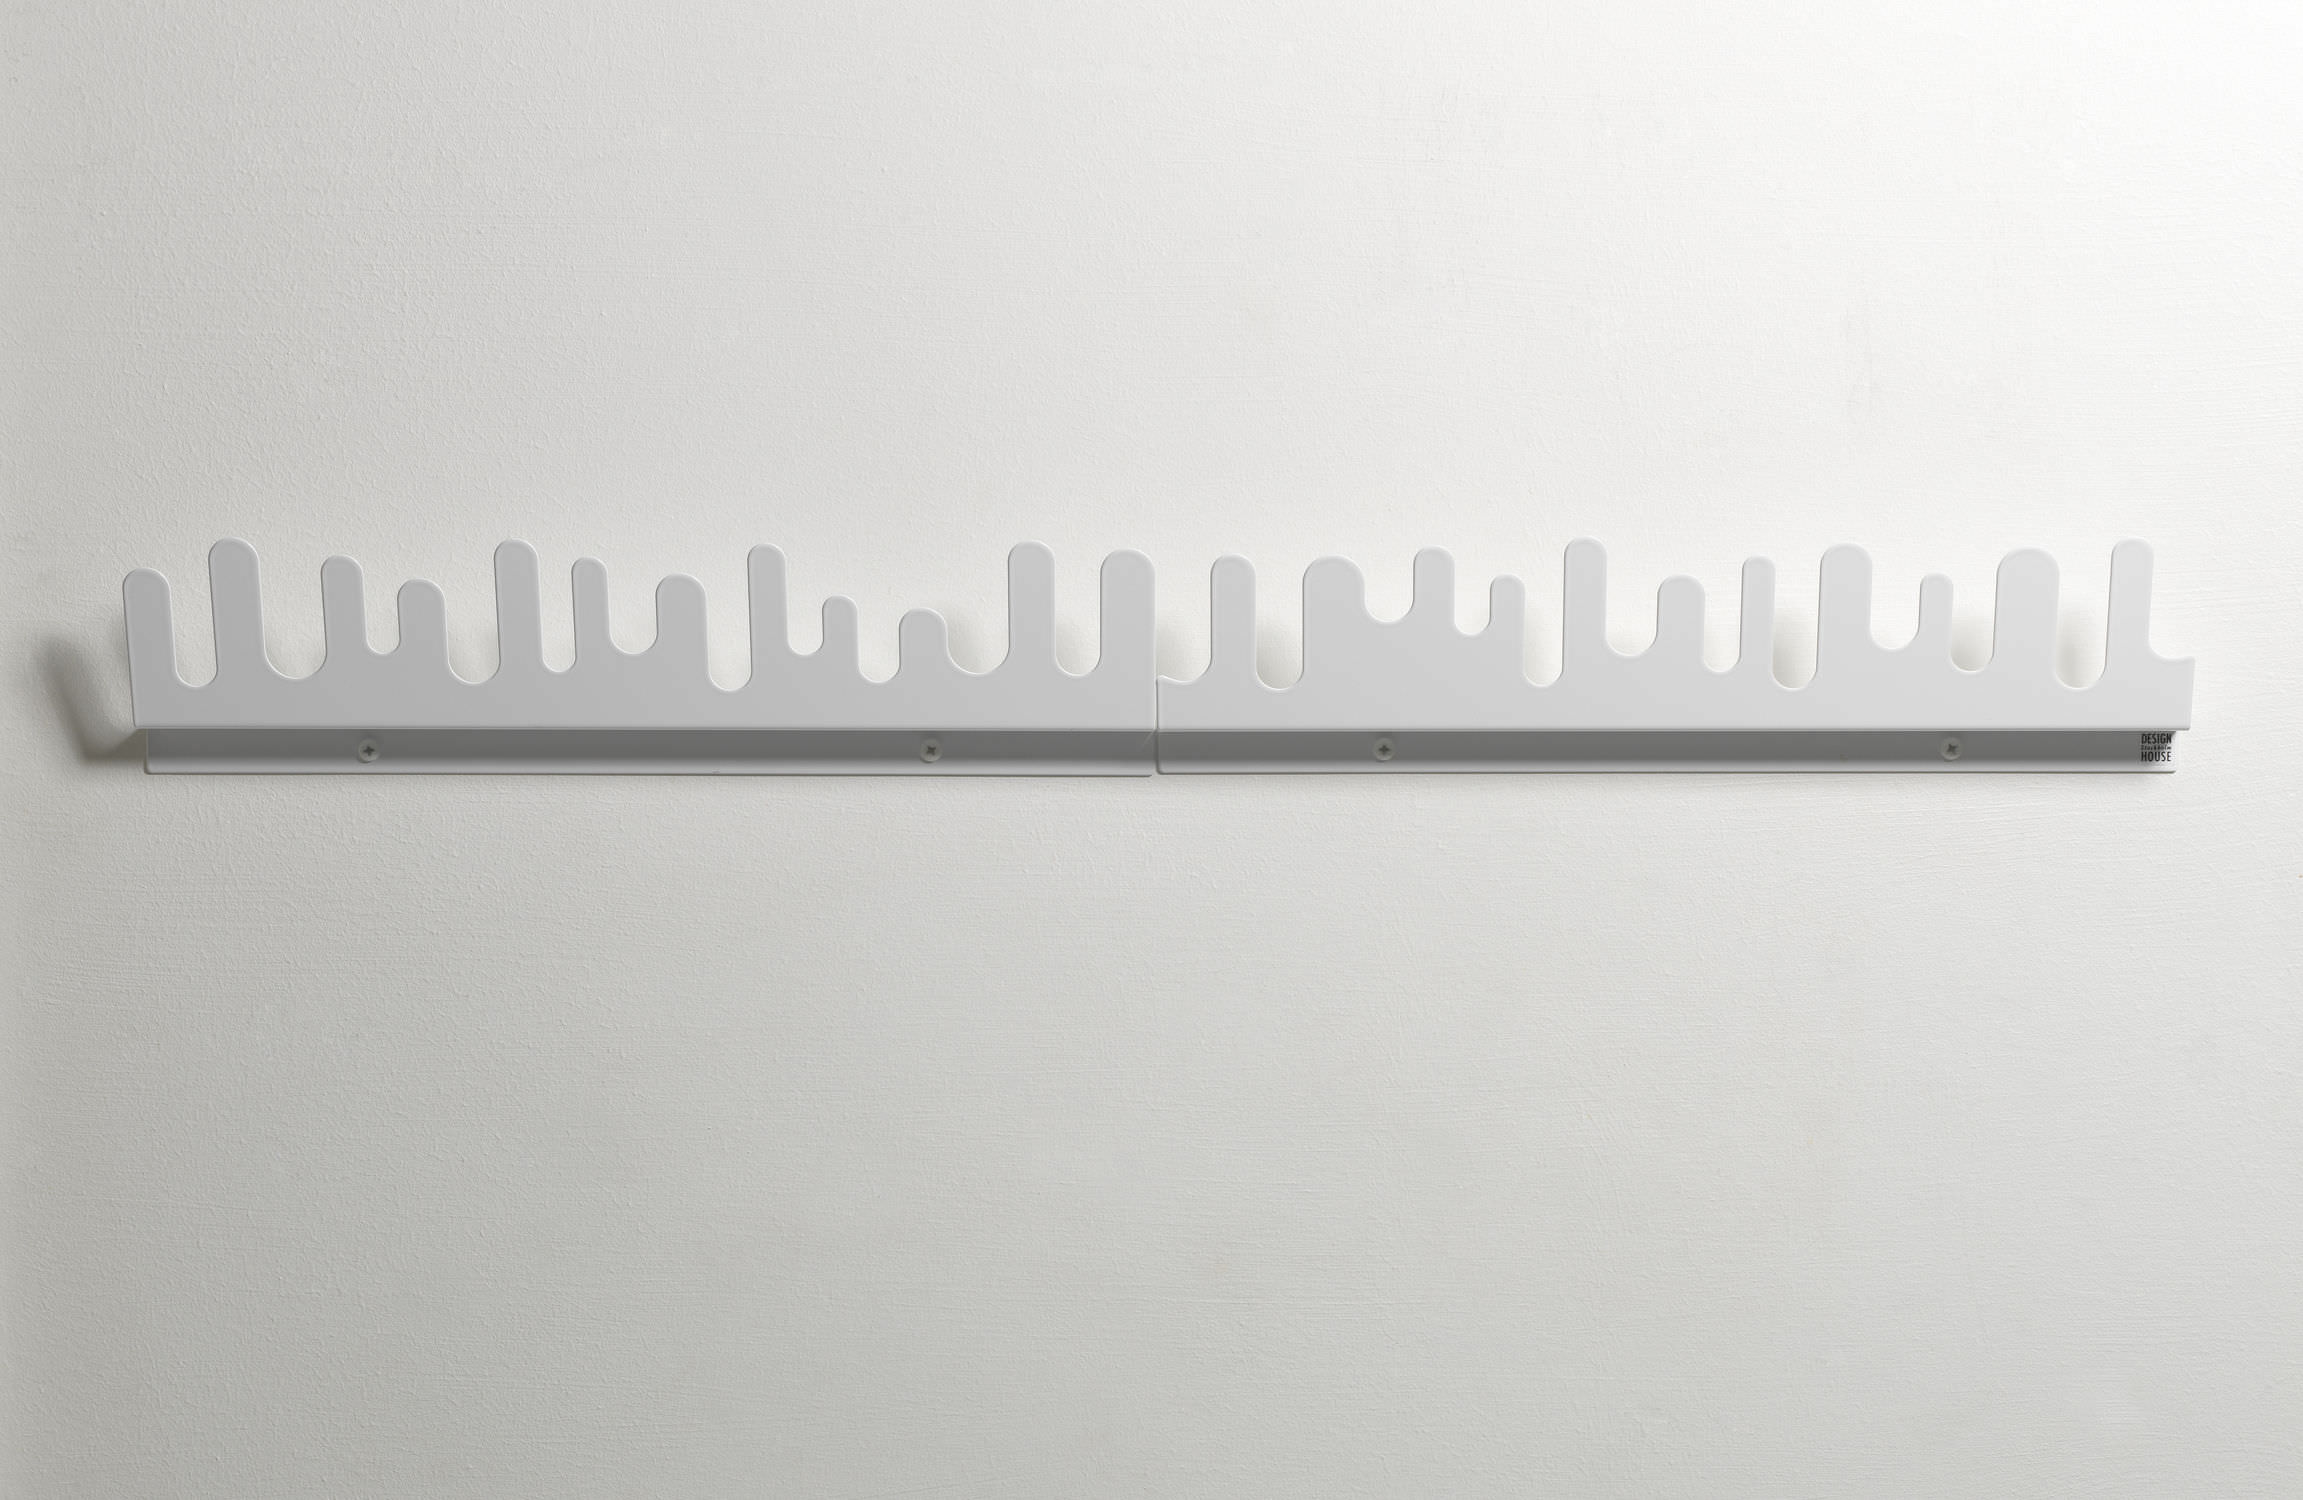 wallmounted coat rack  contemporary  metal  wave by nanni  -  wallmounted coat rack  contemporary  metal wave by nanni holéndesign house stockholm